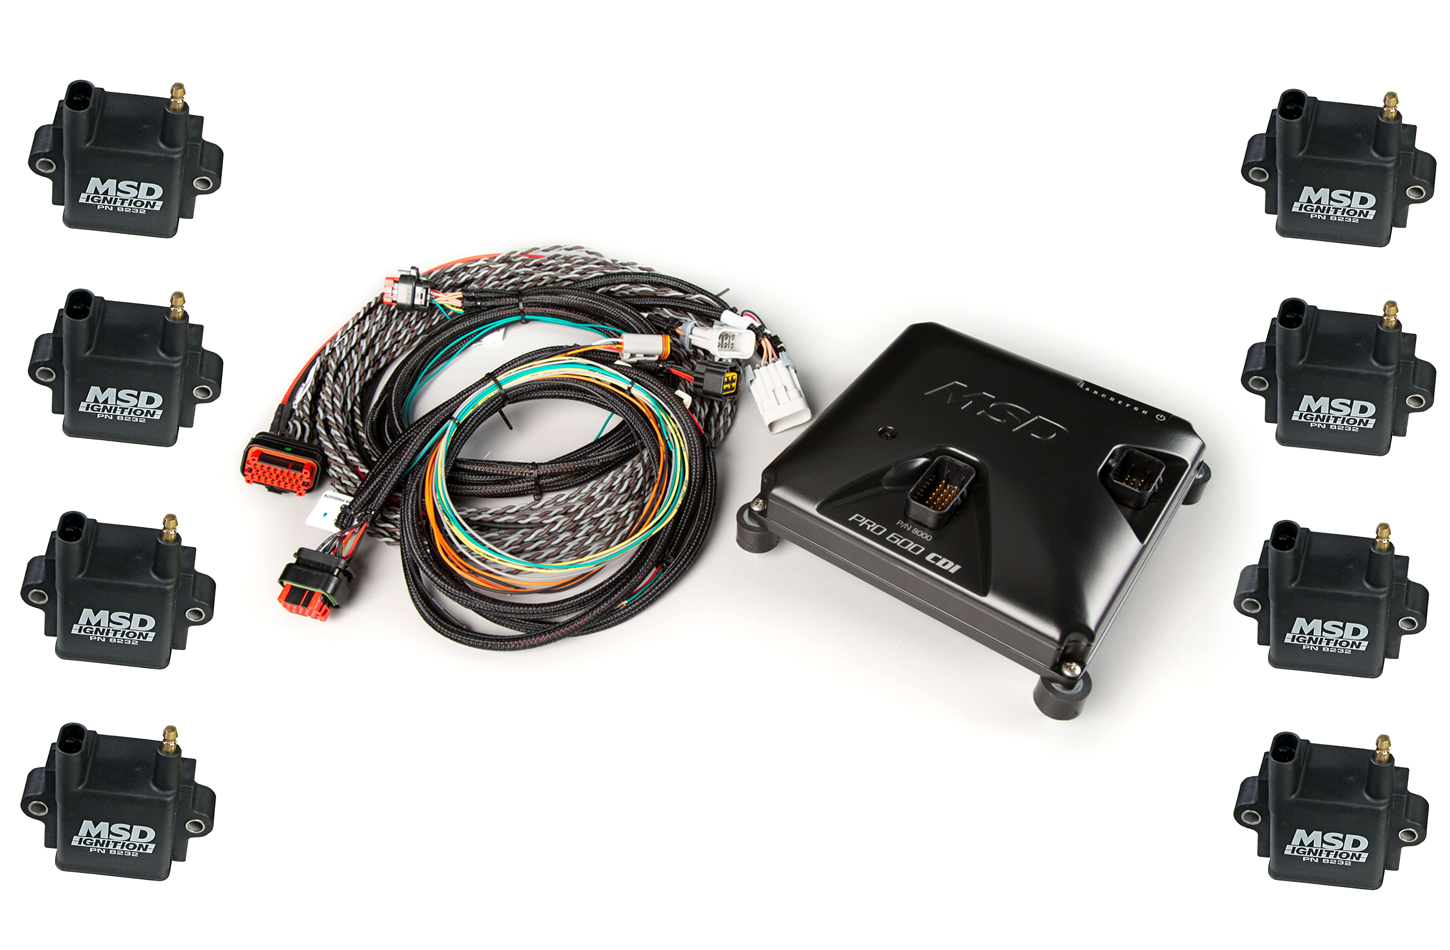 Msd Ignition Pro 600 CDI Ignition System w/8232 Coils